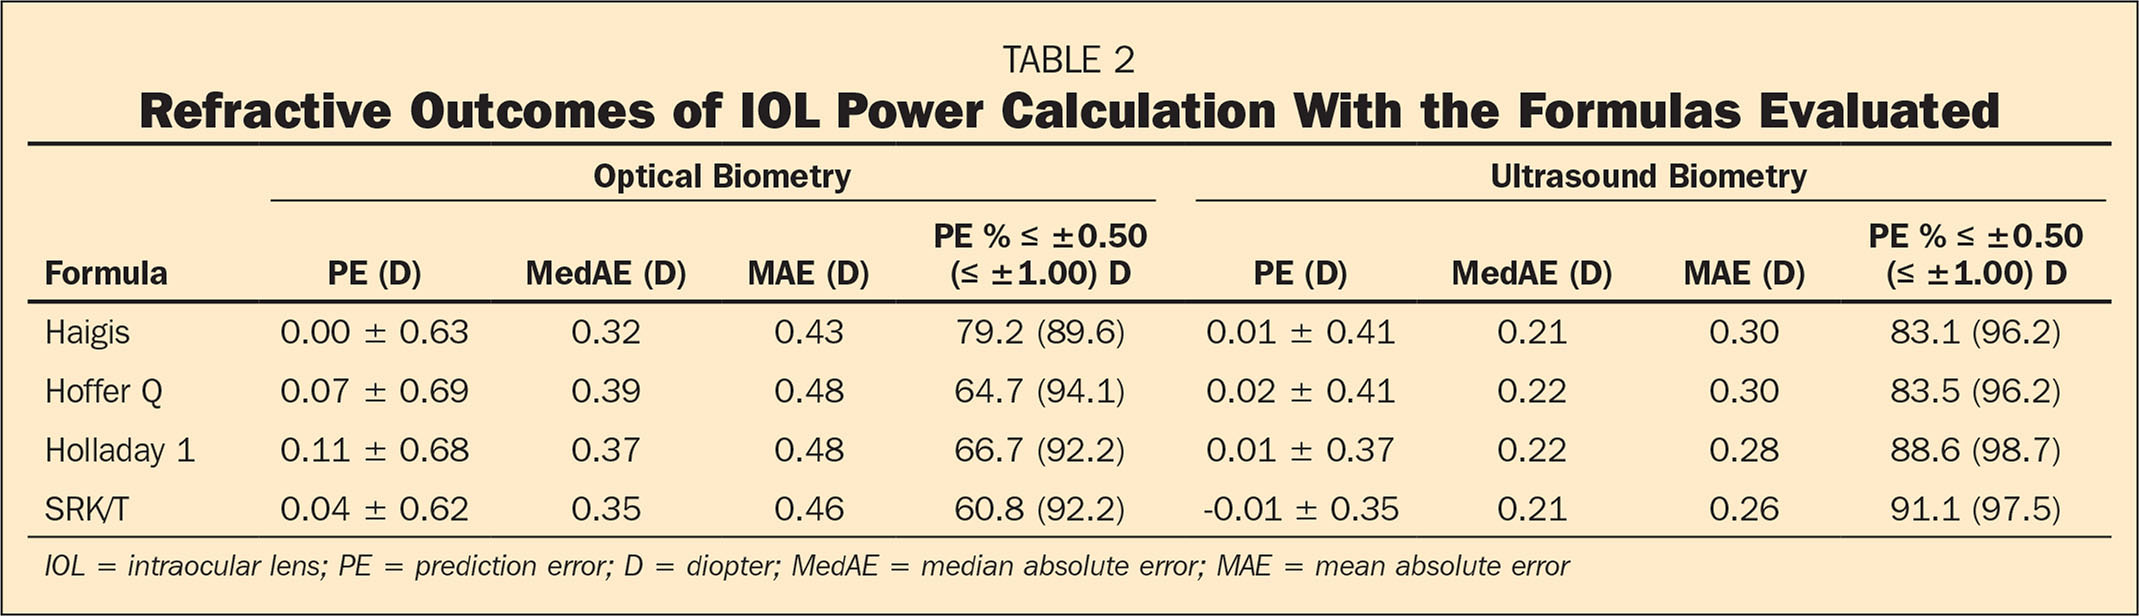 Refractive Outcomes of IOL Power Calculation With the Formulas Evaluated